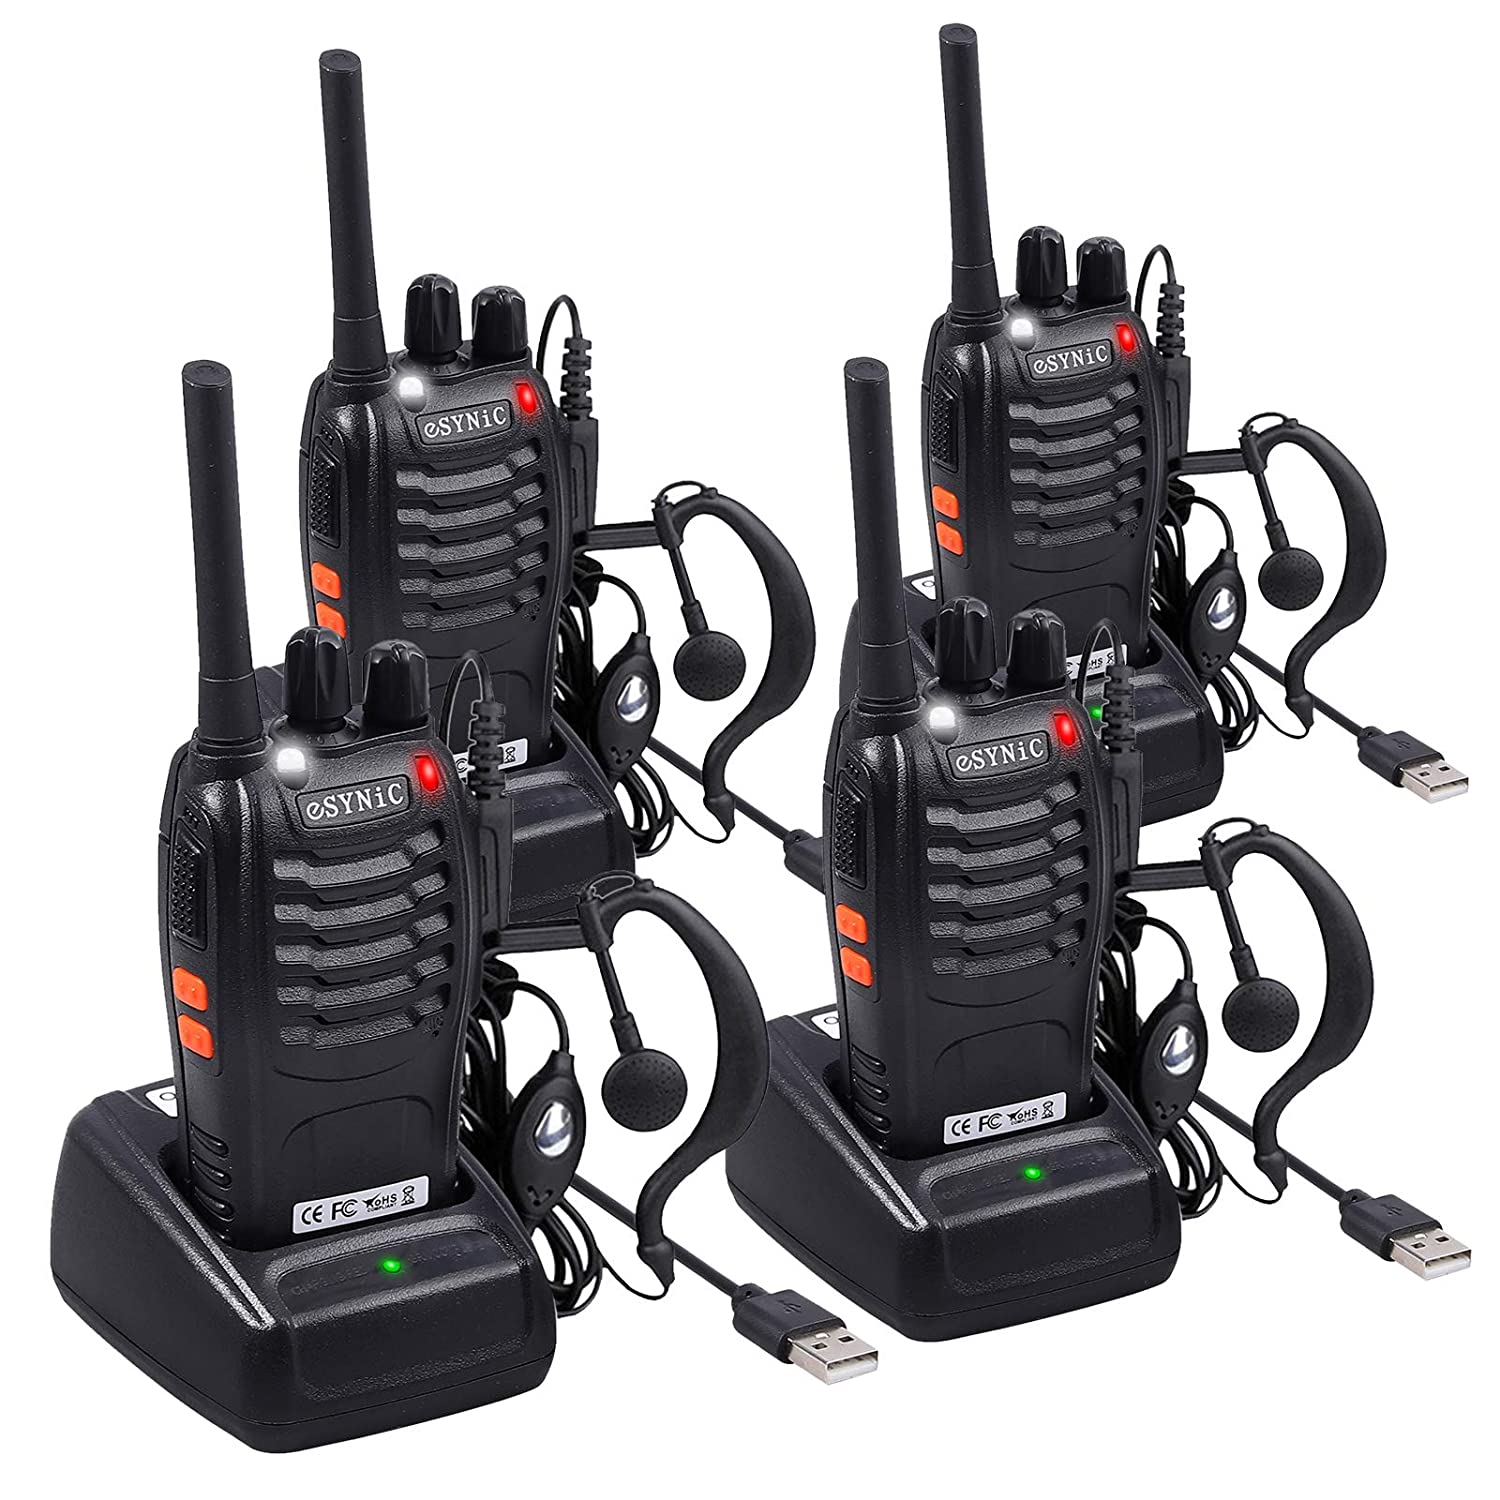 eSynic 4 pcs Rechargeable Walkie Talkies with Earpieces Long Range Two-Way Radio 16 Channel UHF with Flashlight walky Talky Handheld Transceiver USB Charging Included